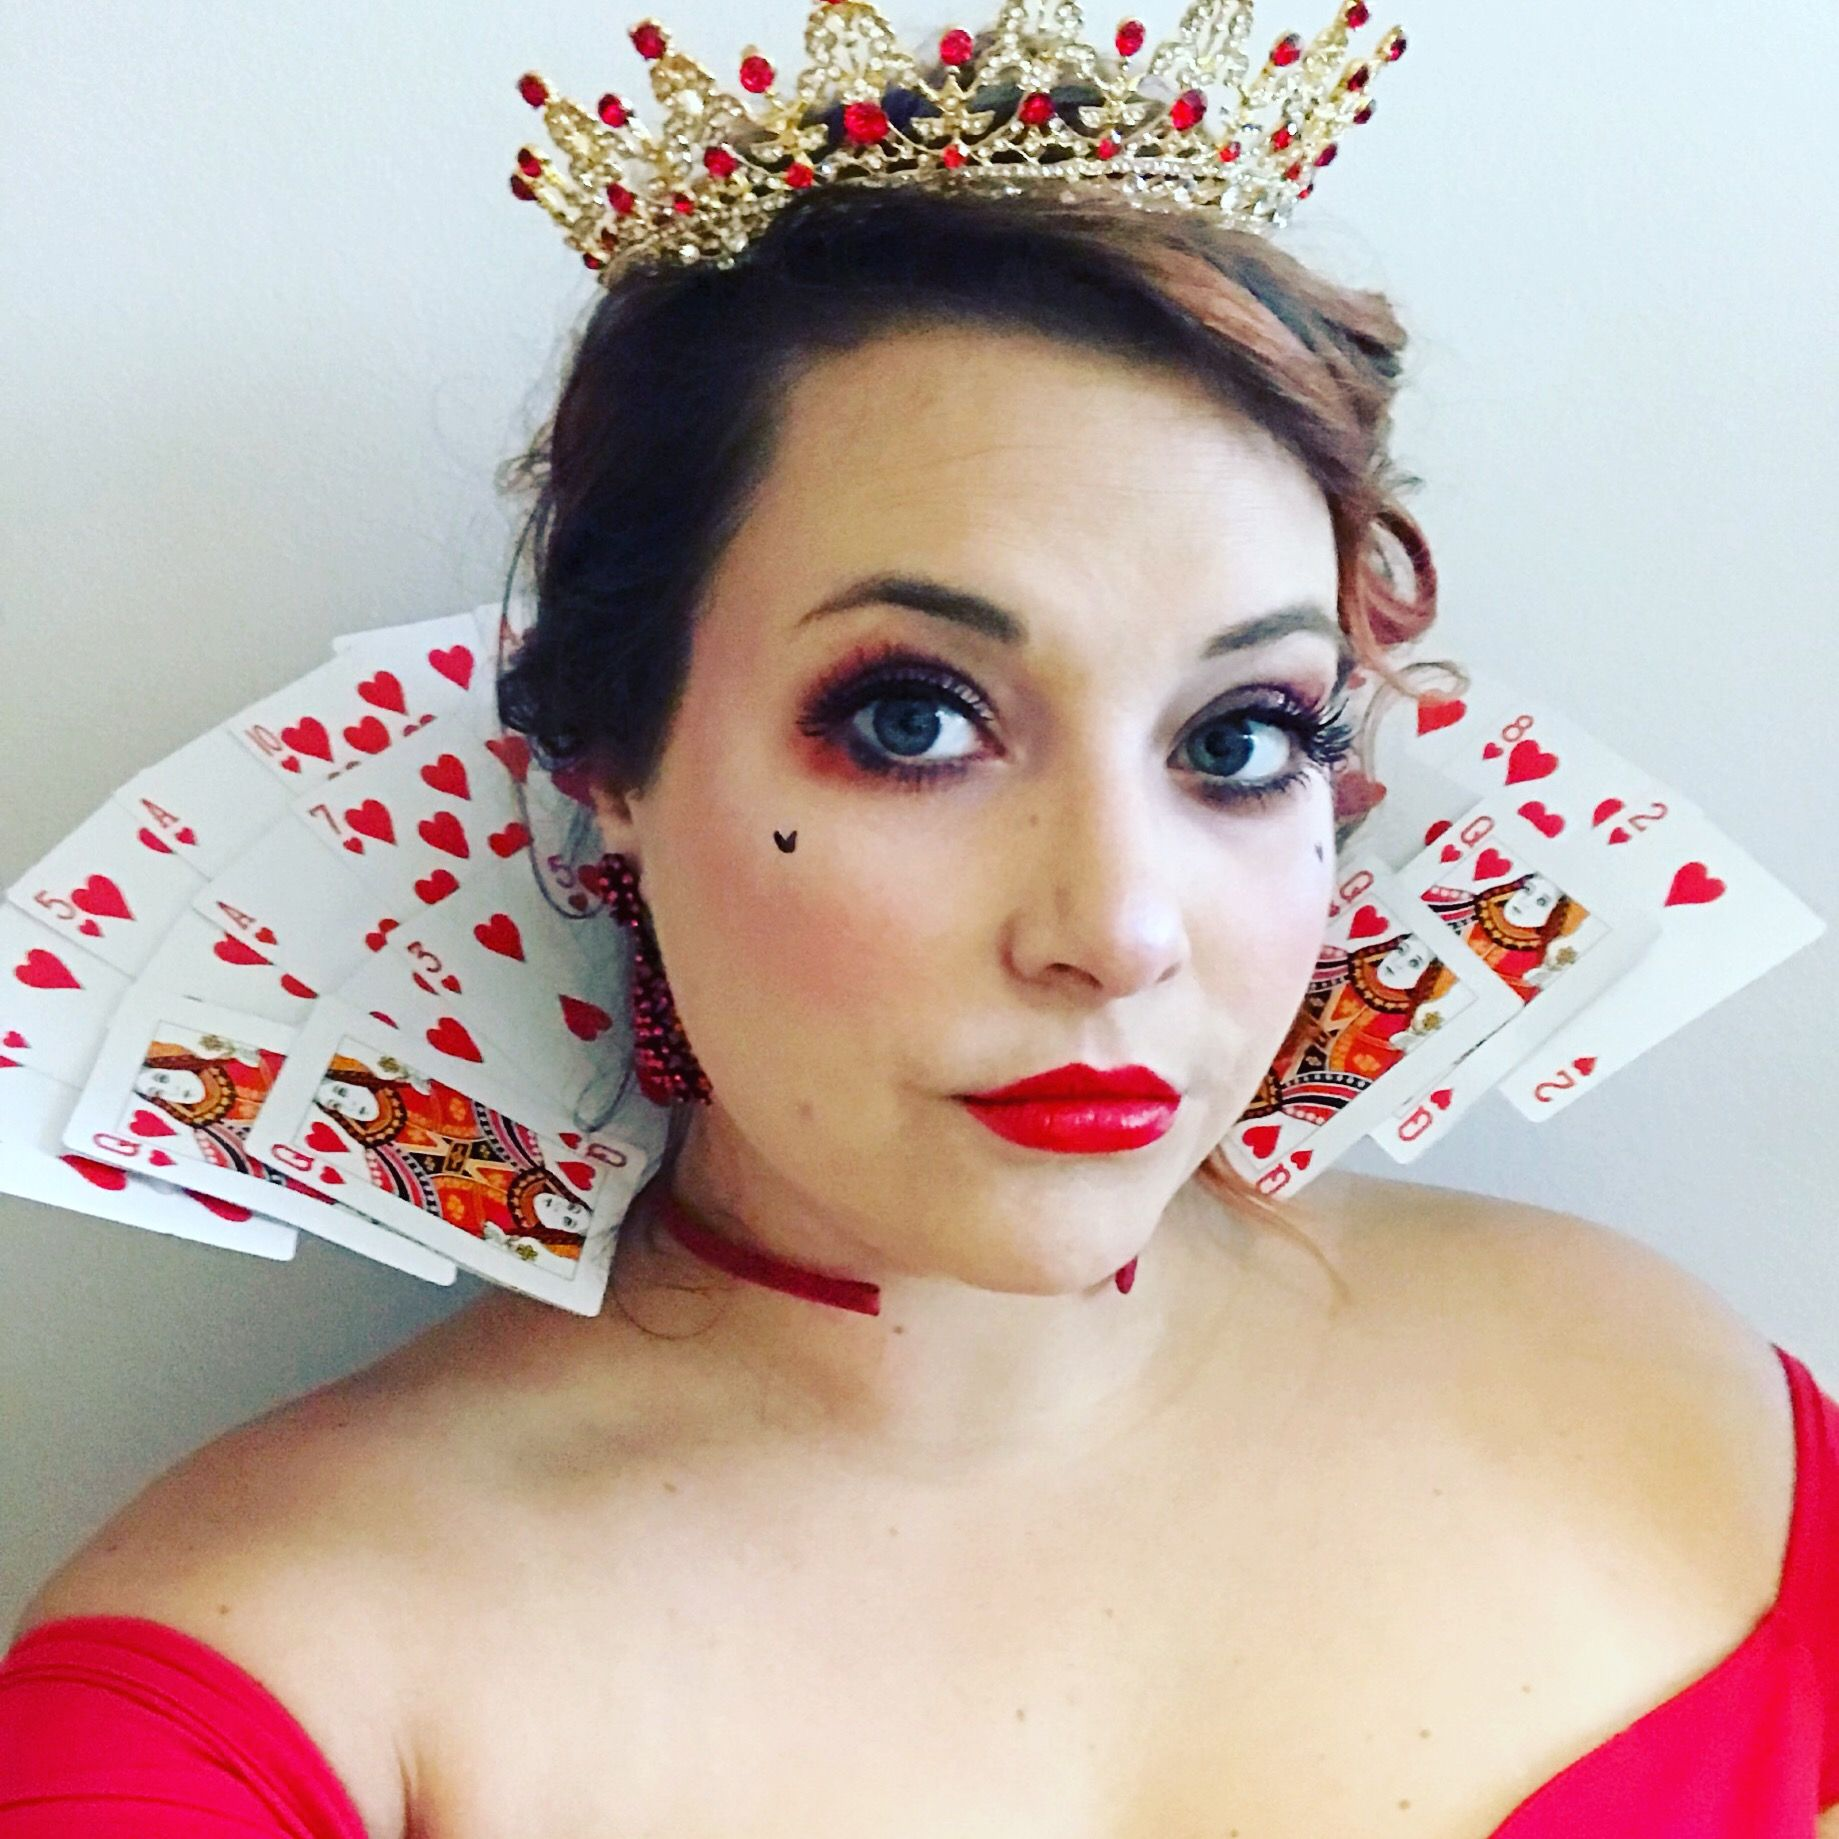 Queen Of Hearts Easy Diy Halloween Costume Card Collar Make Up Glam Diy Halloween Costumes For Women Diy Costumes Women Easy Diy Costumes Women